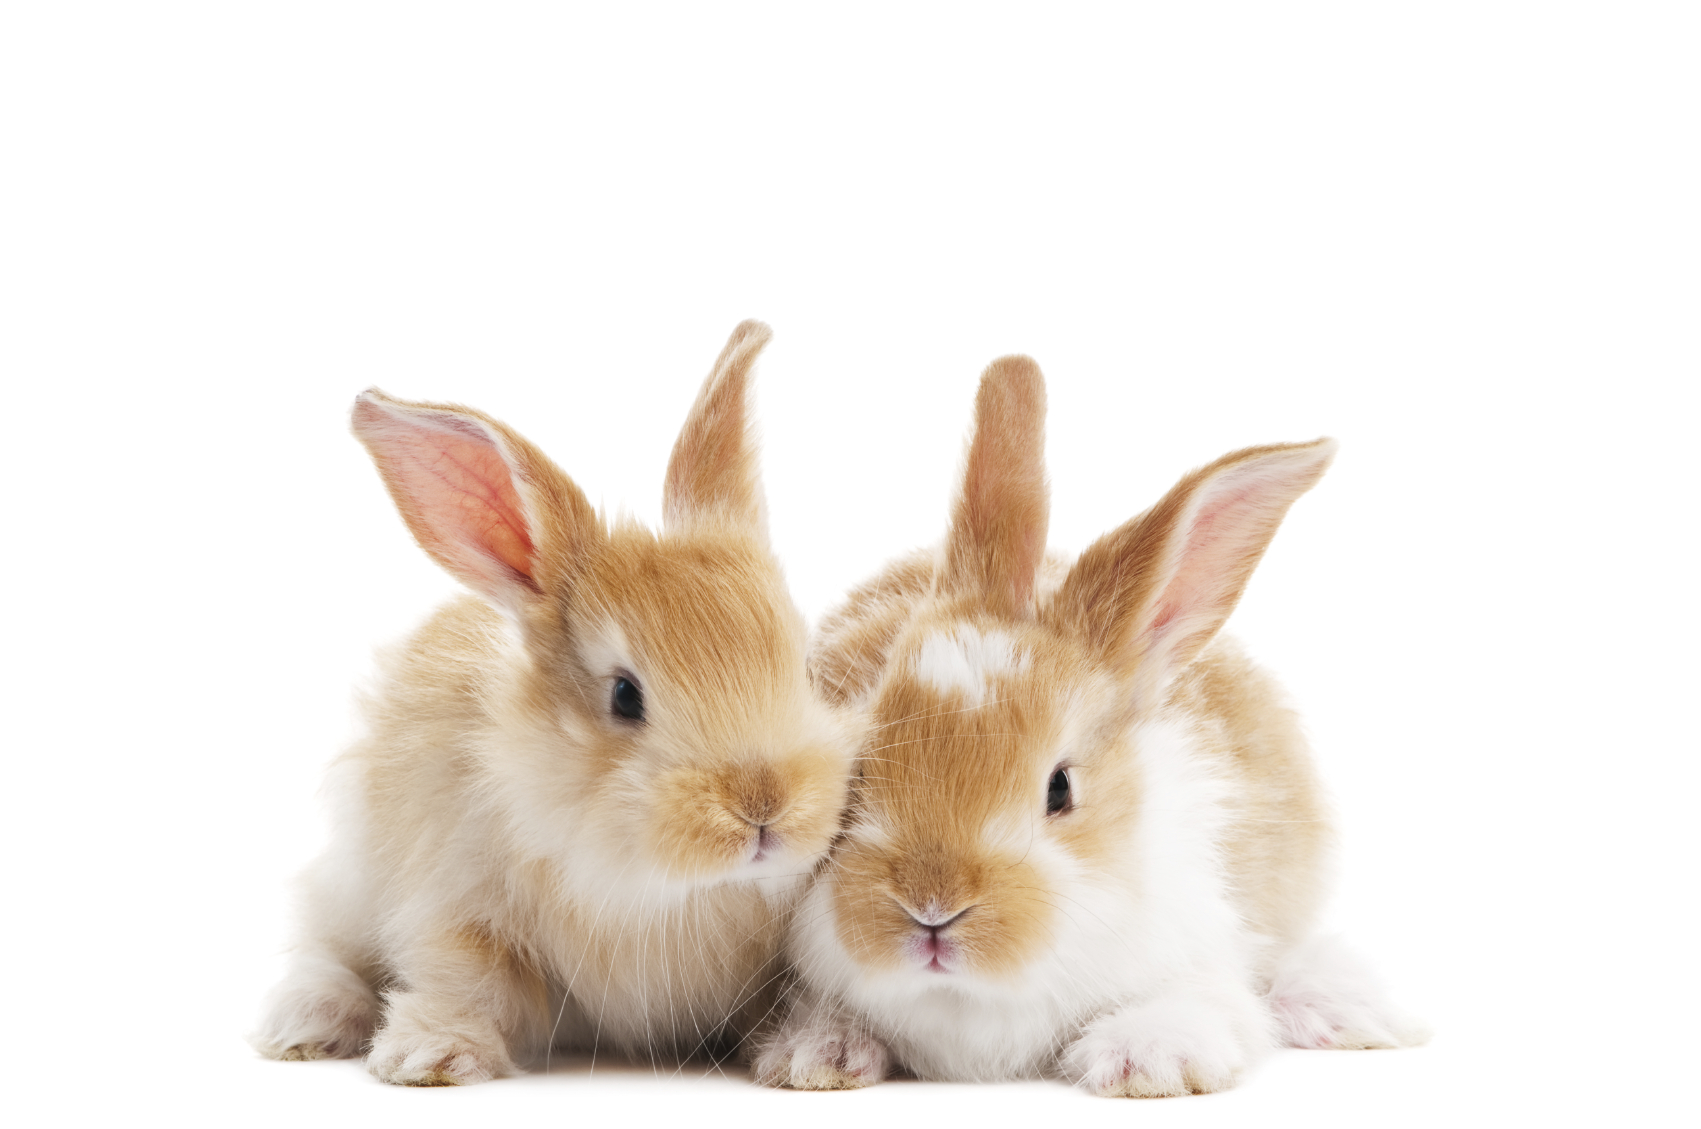 rabbits_two_side_by_side.jpg